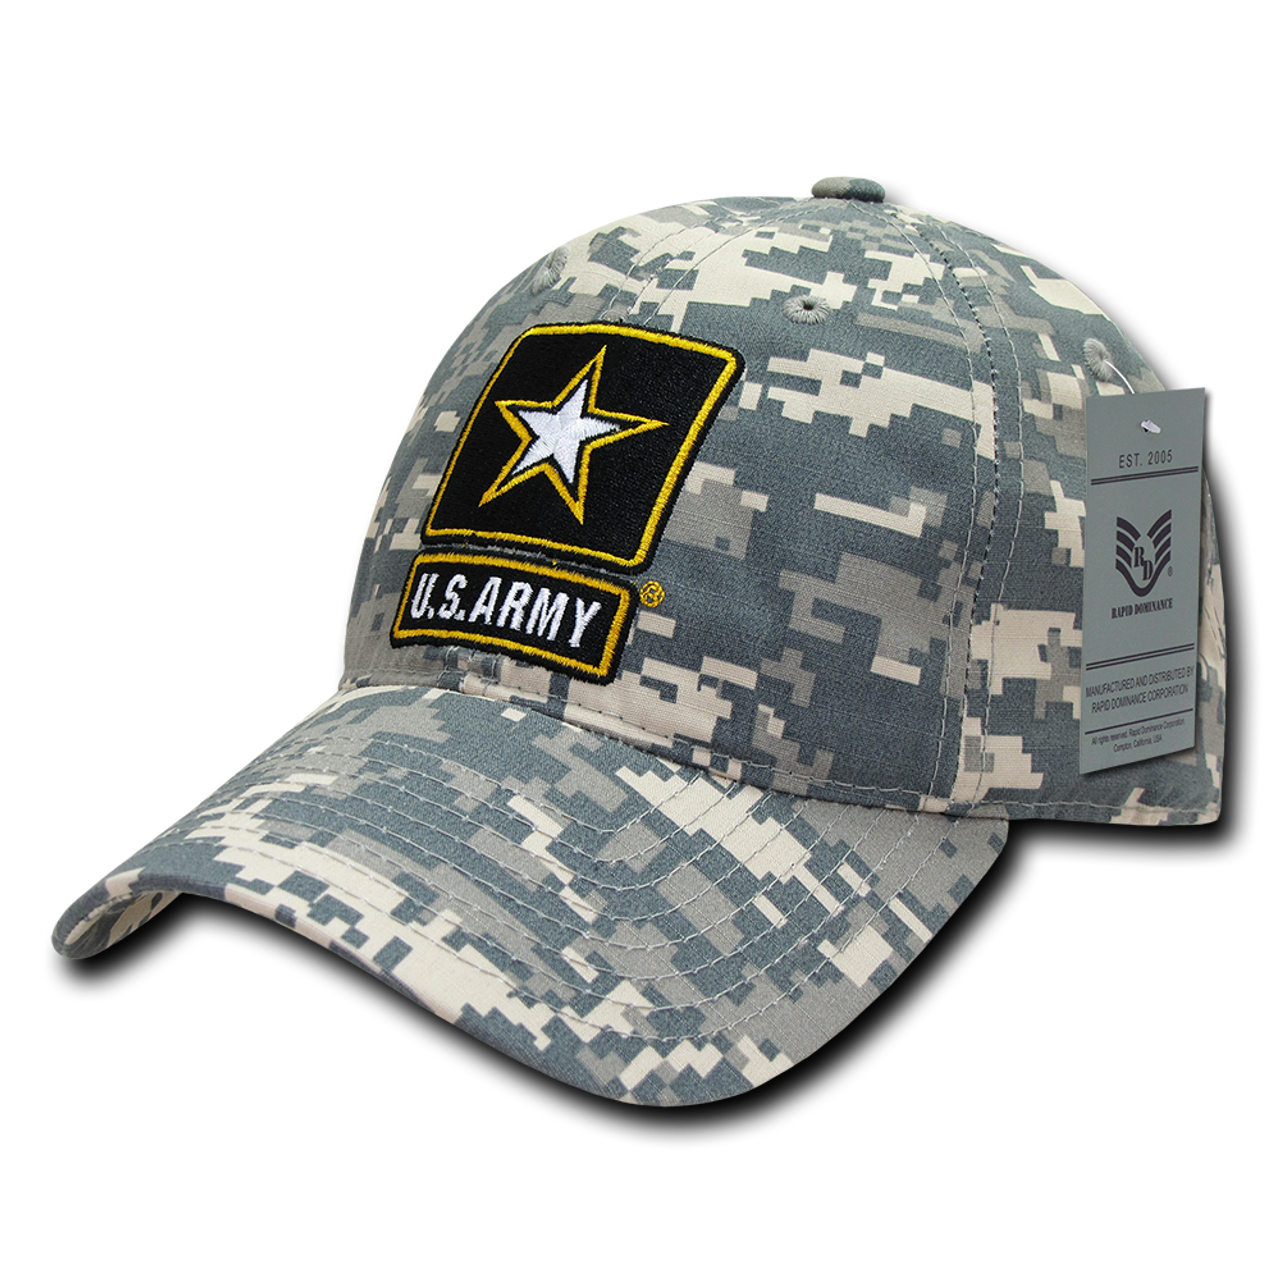 1222387fe2b S74 - Army Cap - Relaxed Ripstop Cotton - ACU Digital Camouflage - U.S. Military  Hats.com